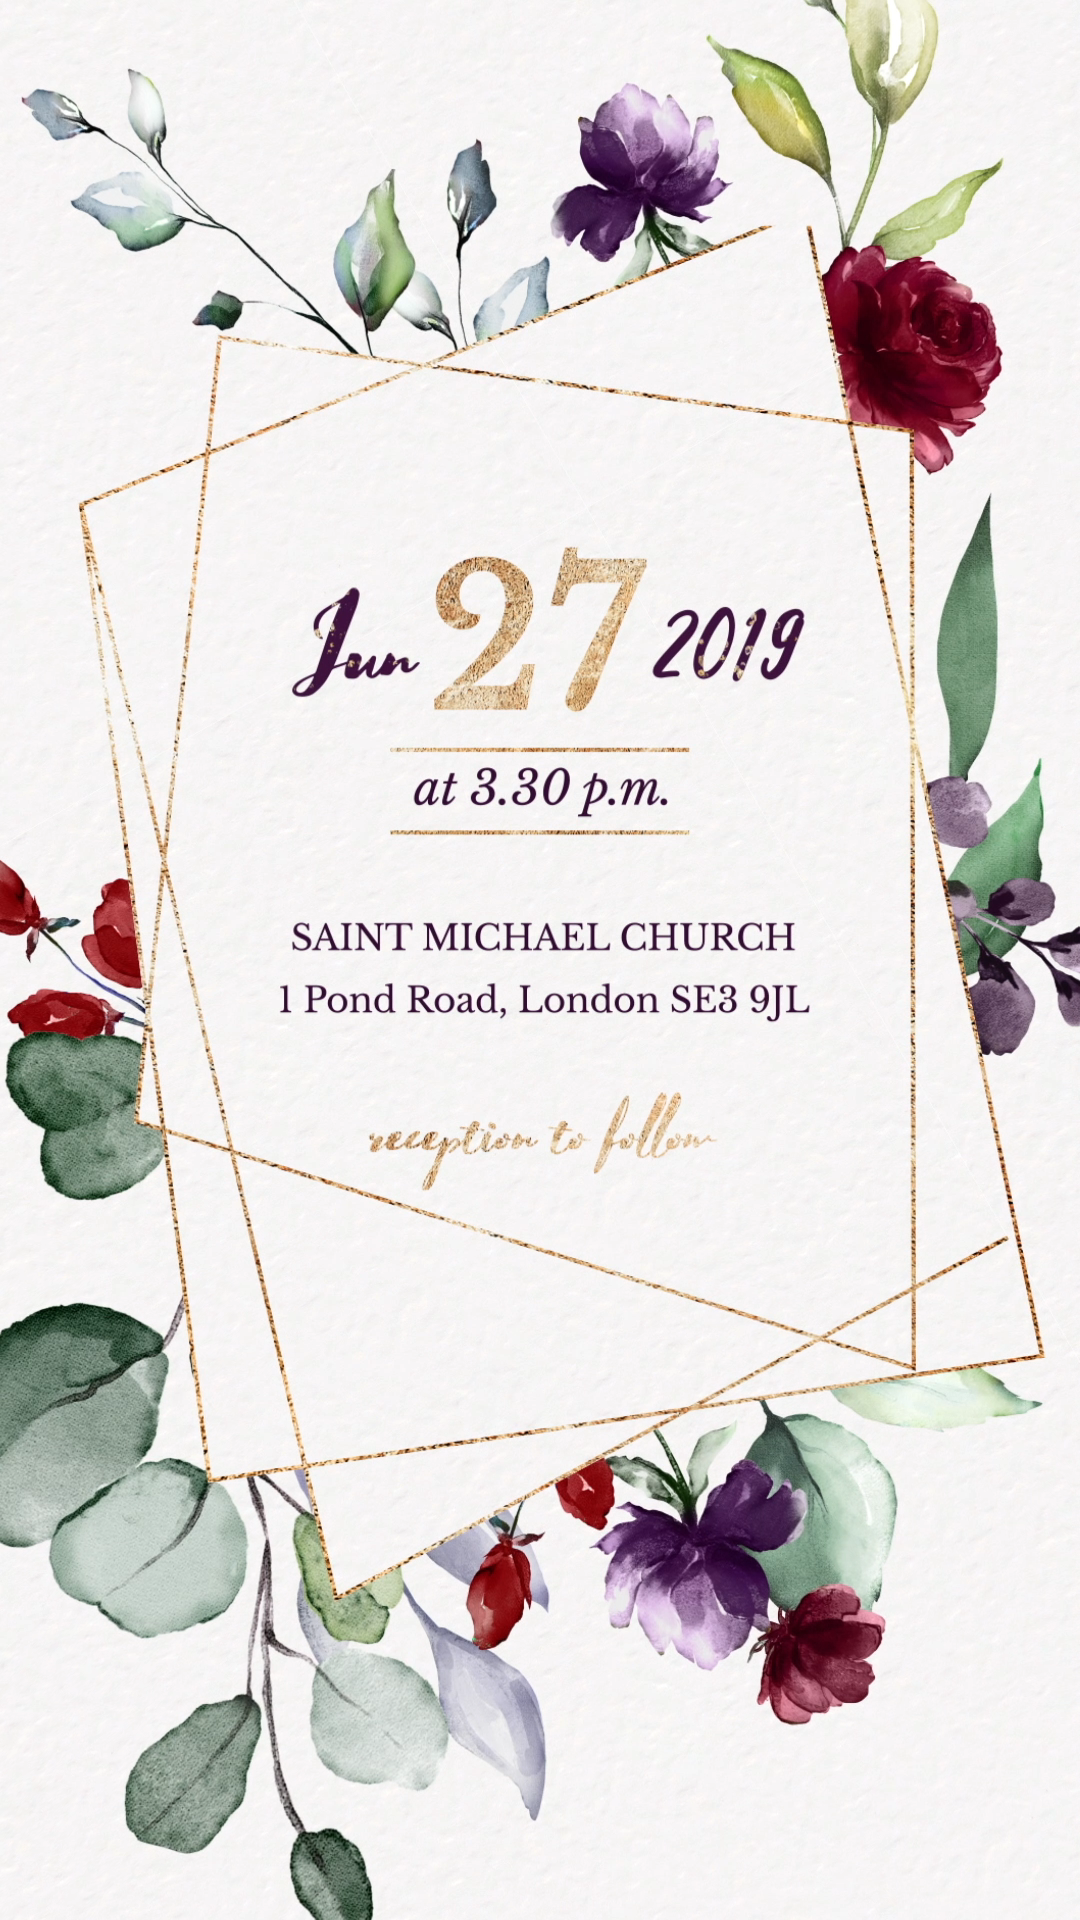 Burgundy Wedding Invitation Video Burgundy Floral Electronic Save The Dat In 2020 Wedding Invitation Video Electronic Wedding Invitations Burgundy Wedding Invitations